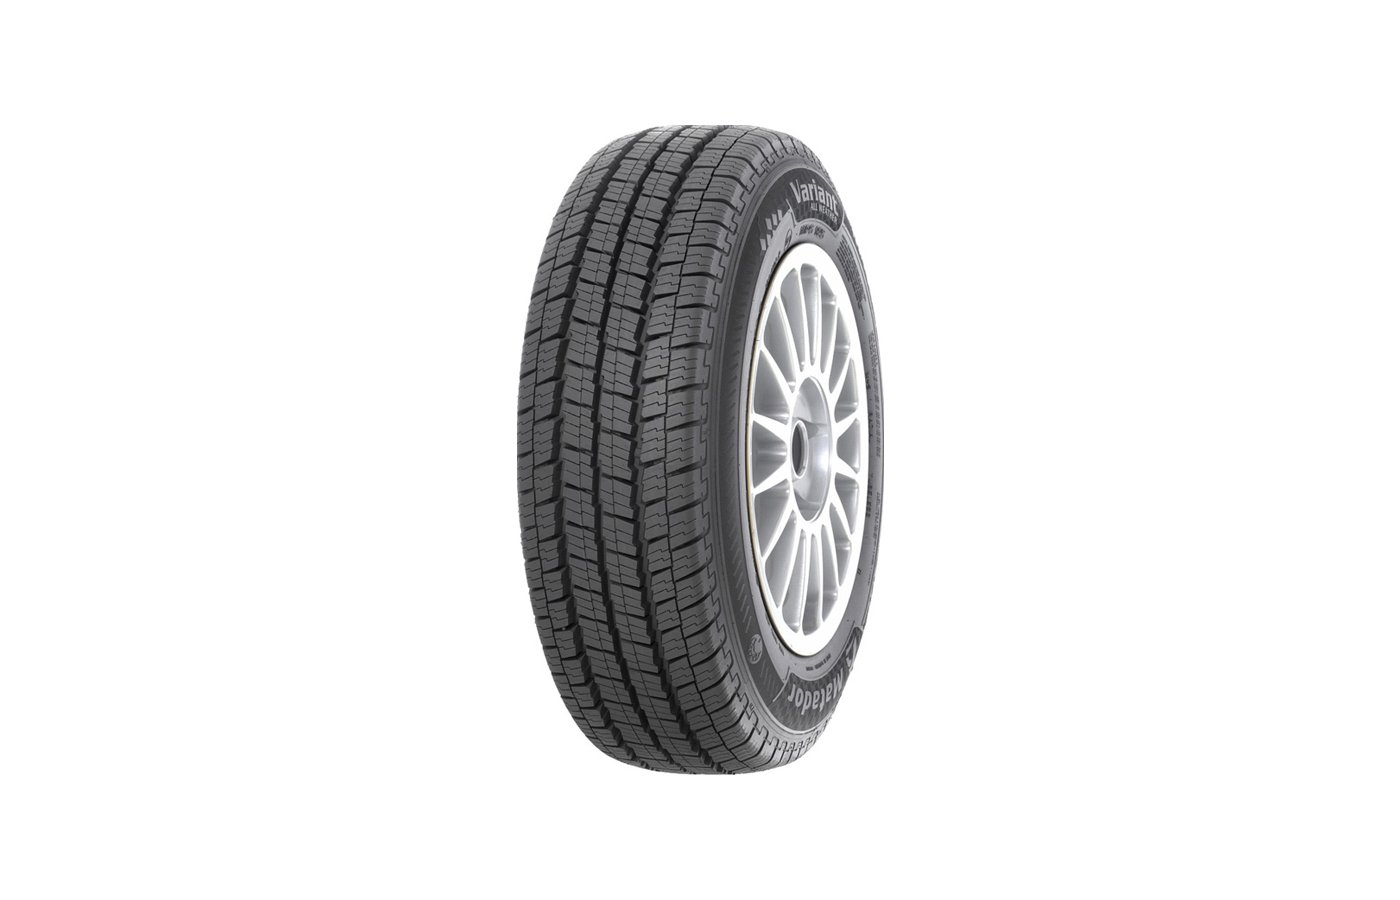 Шина Matador MPS 125 Variant All Weather 235/65 R16C TL 121/119N